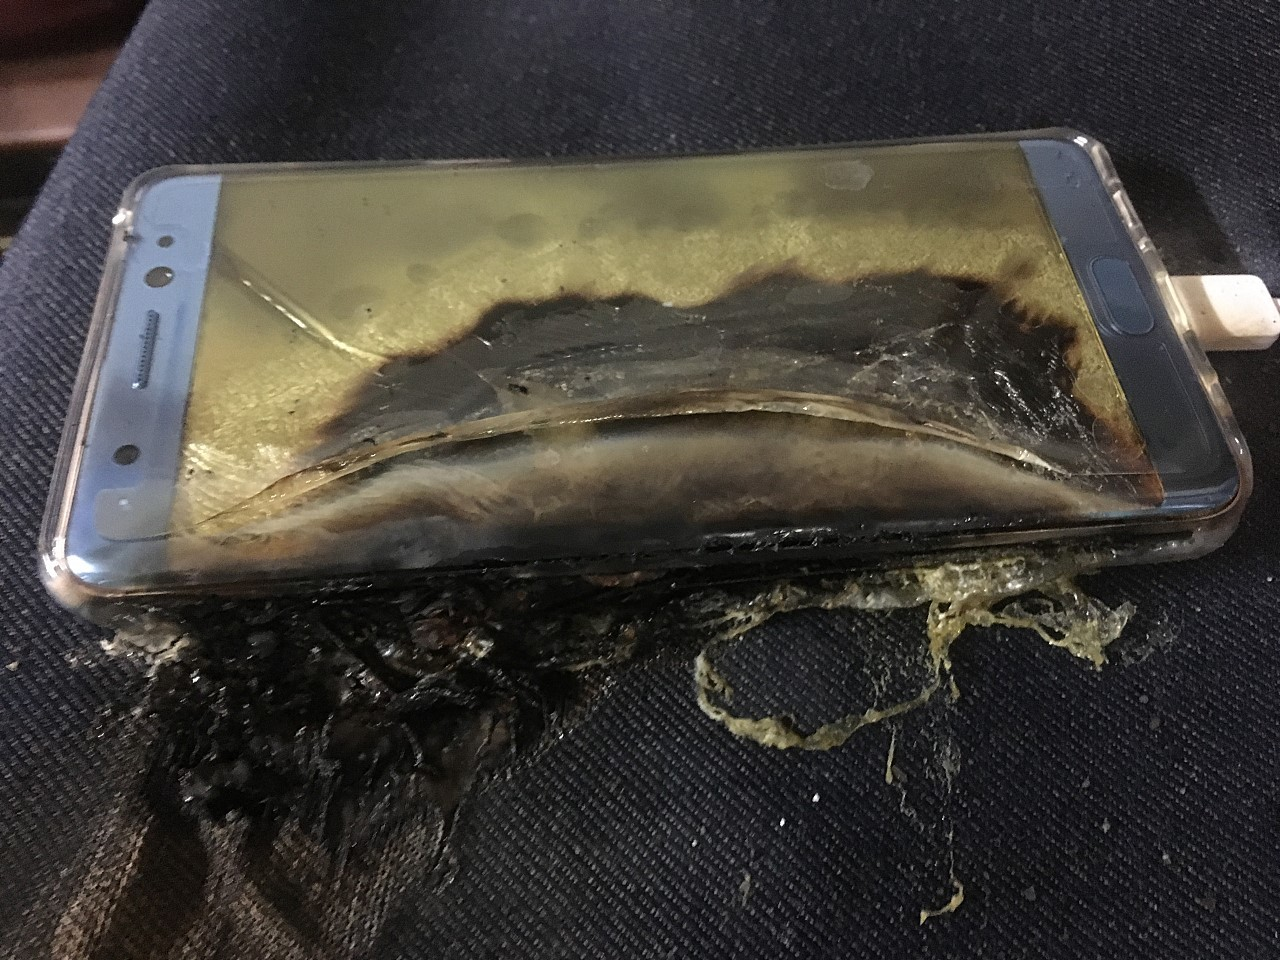 explosive-start-for-samsung-galaxy-note-7-more-phones-catch-fire-while-charging-507793-4.jpg